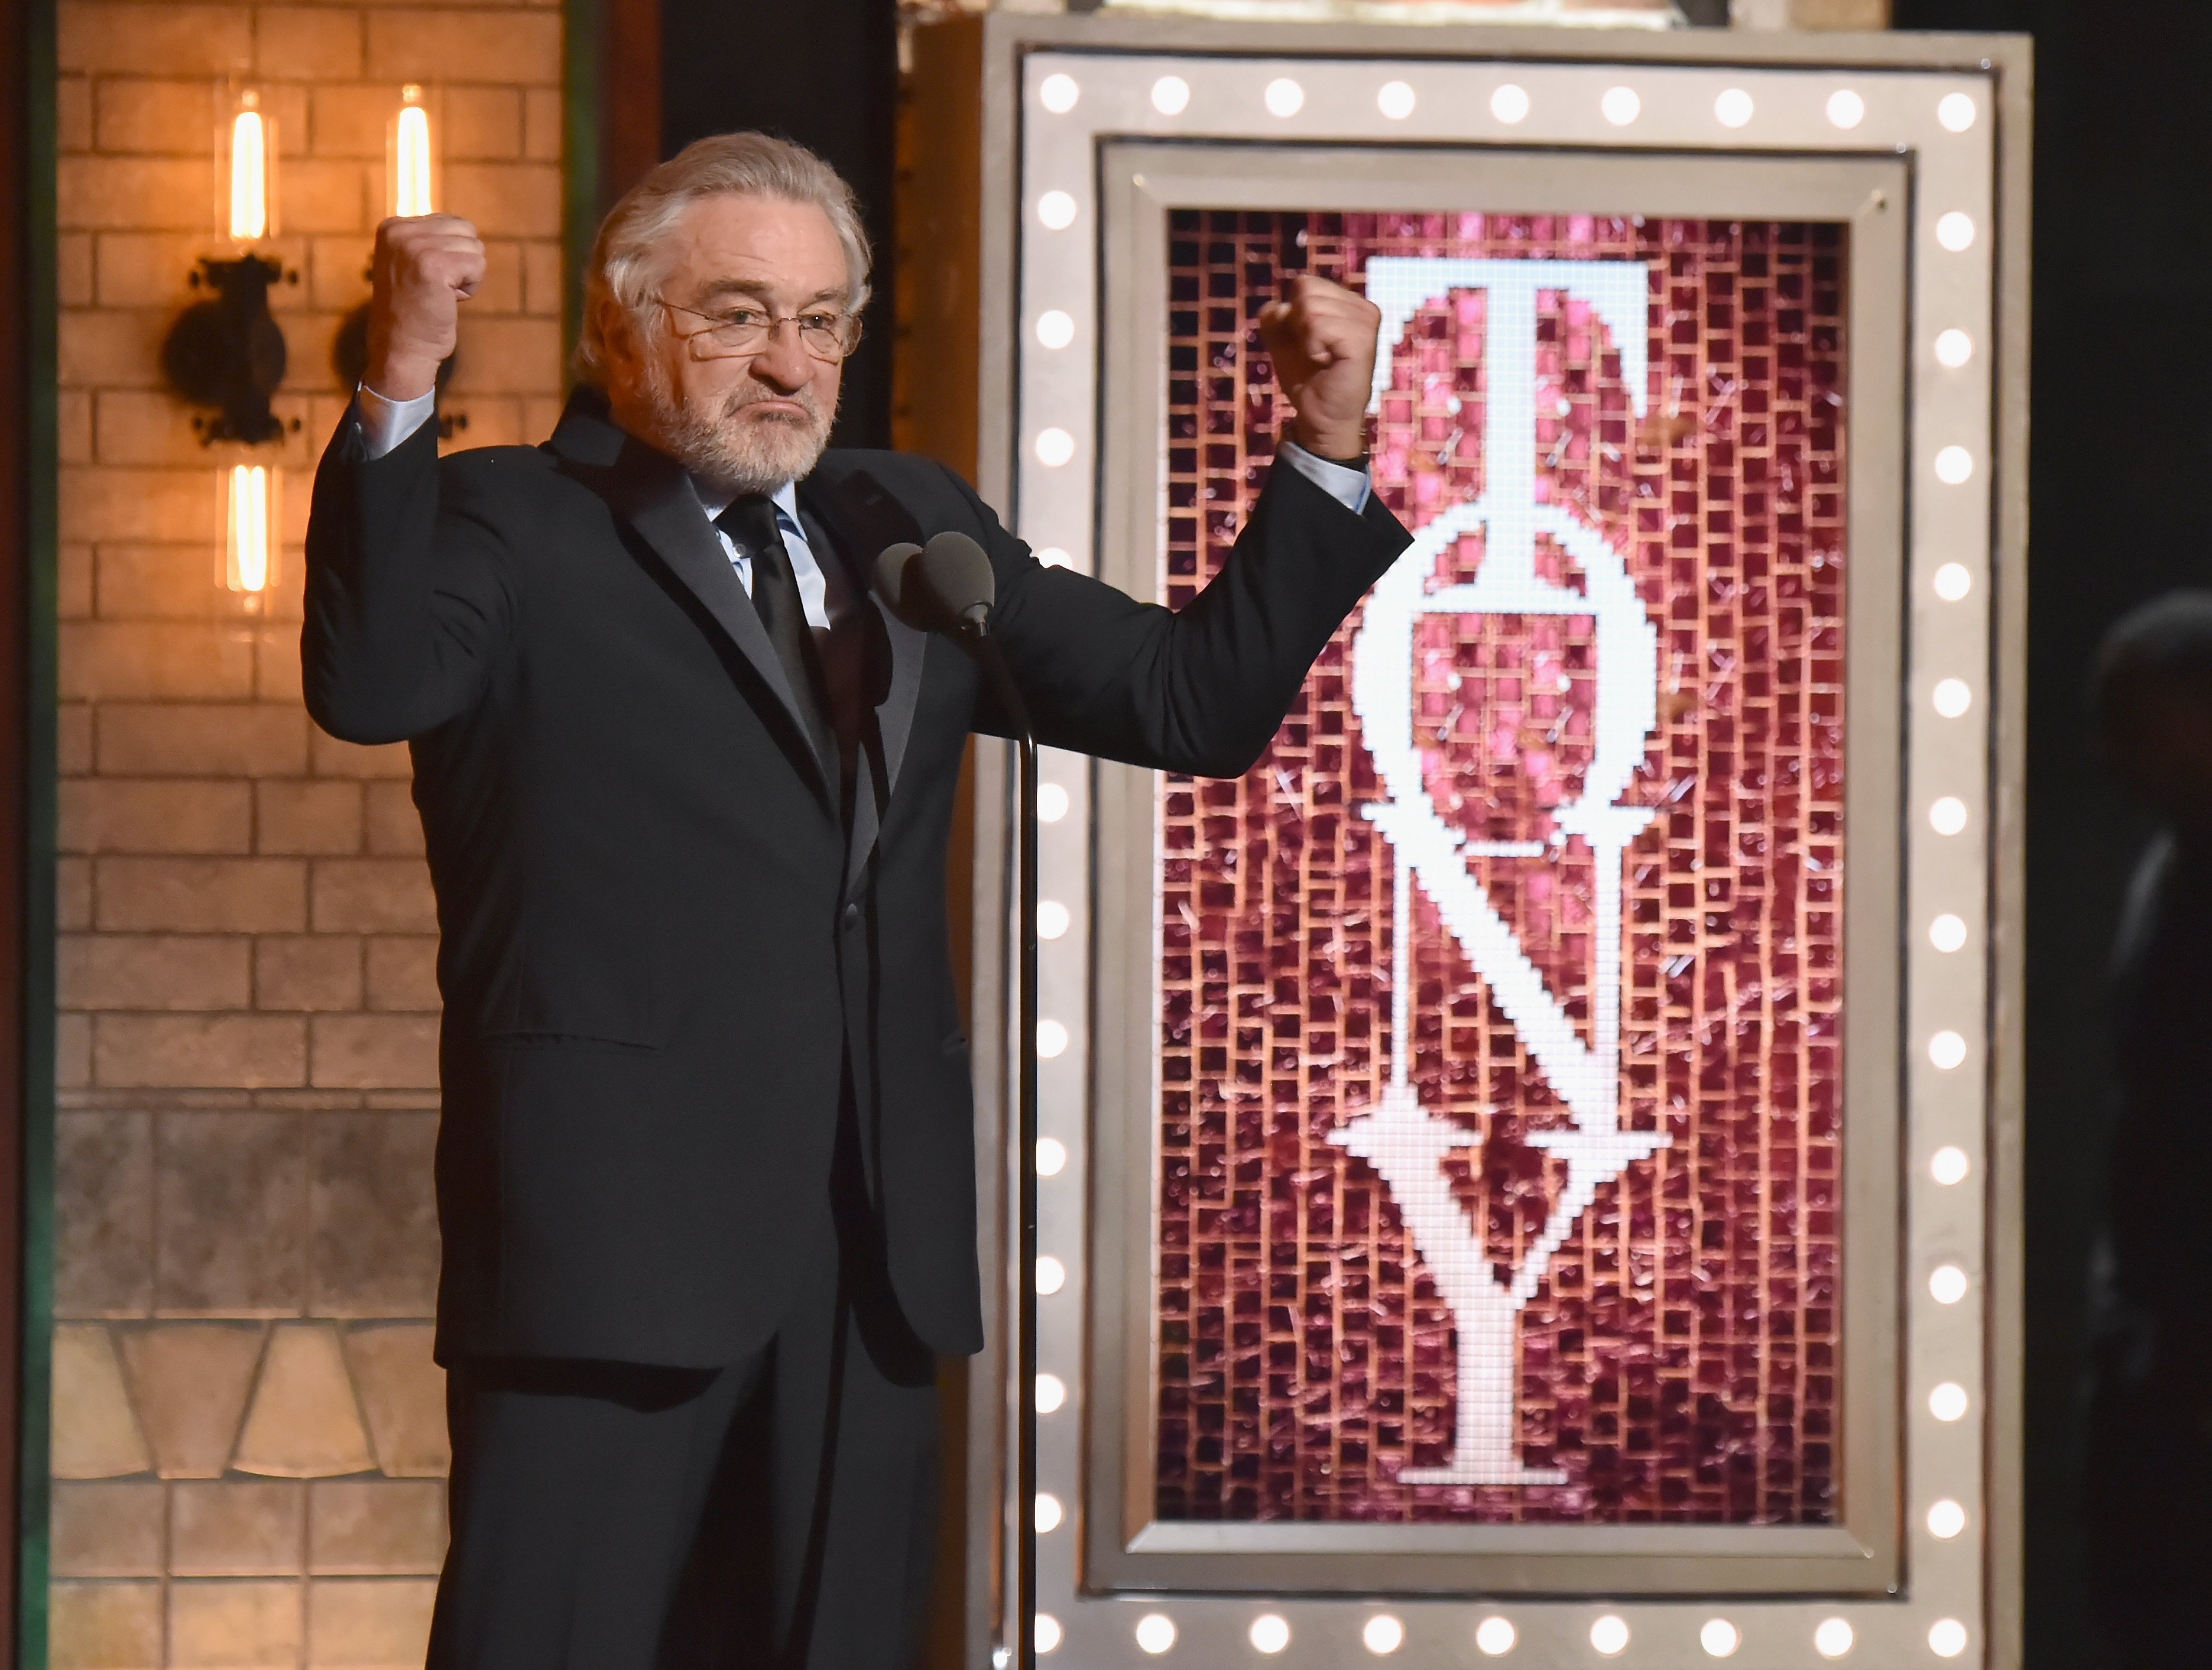 Robert De Niro speaks onstage during the 72nd Annual Tony Awards at Radio City Music Hall on June 10, 2018, in New York City. | Source: Getty Images.